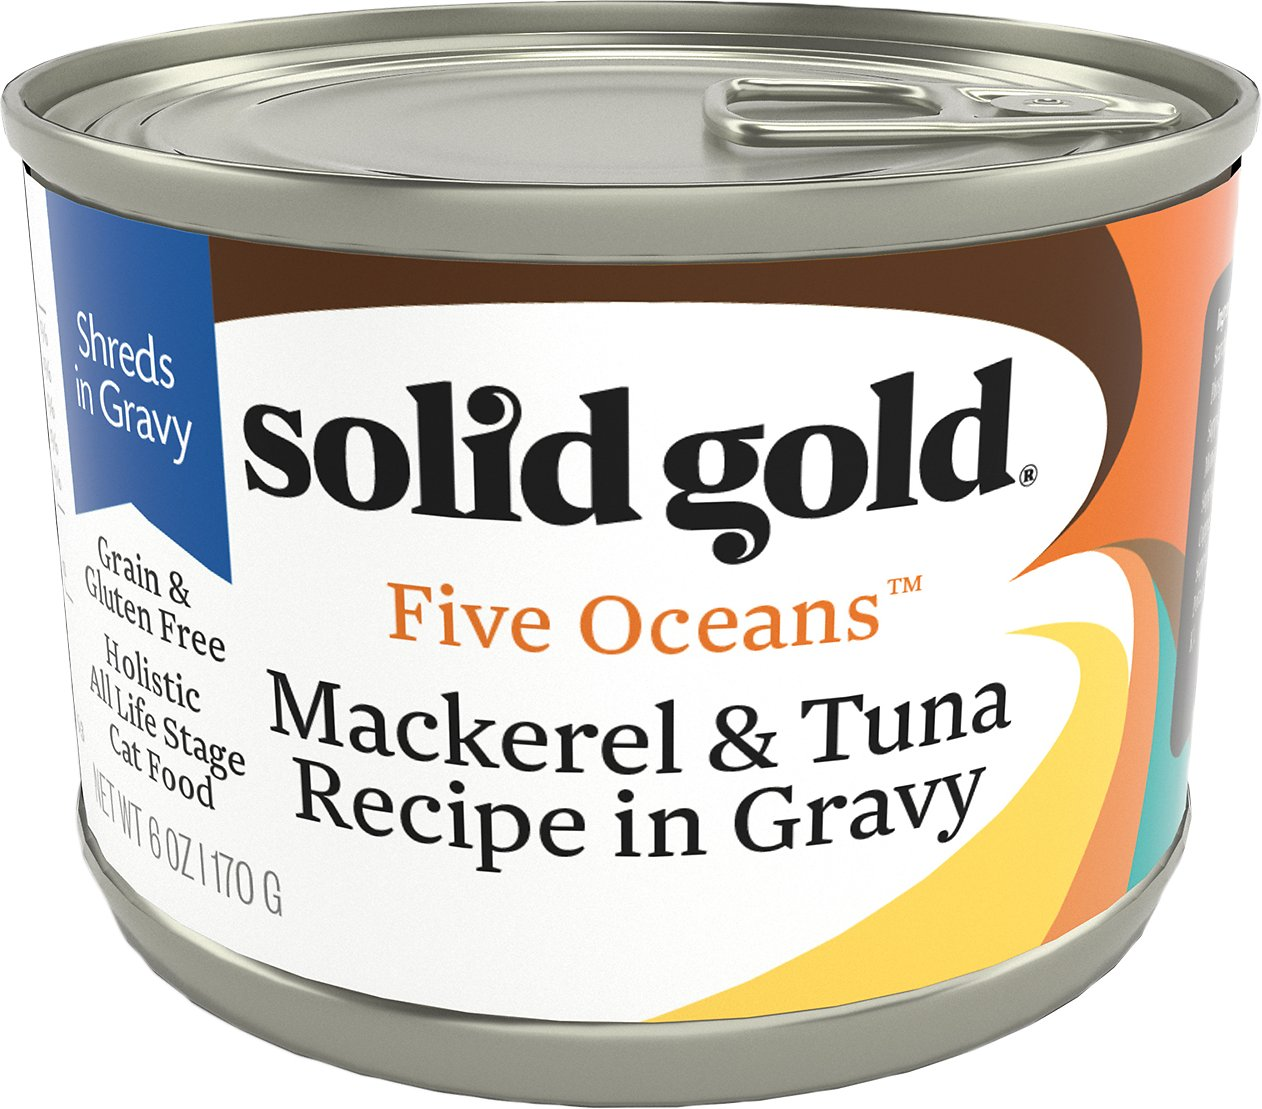 Solid Gold Five Oceans Mackerel & Tuna Recipe in Gravy Grain-Free Canned Cat Food